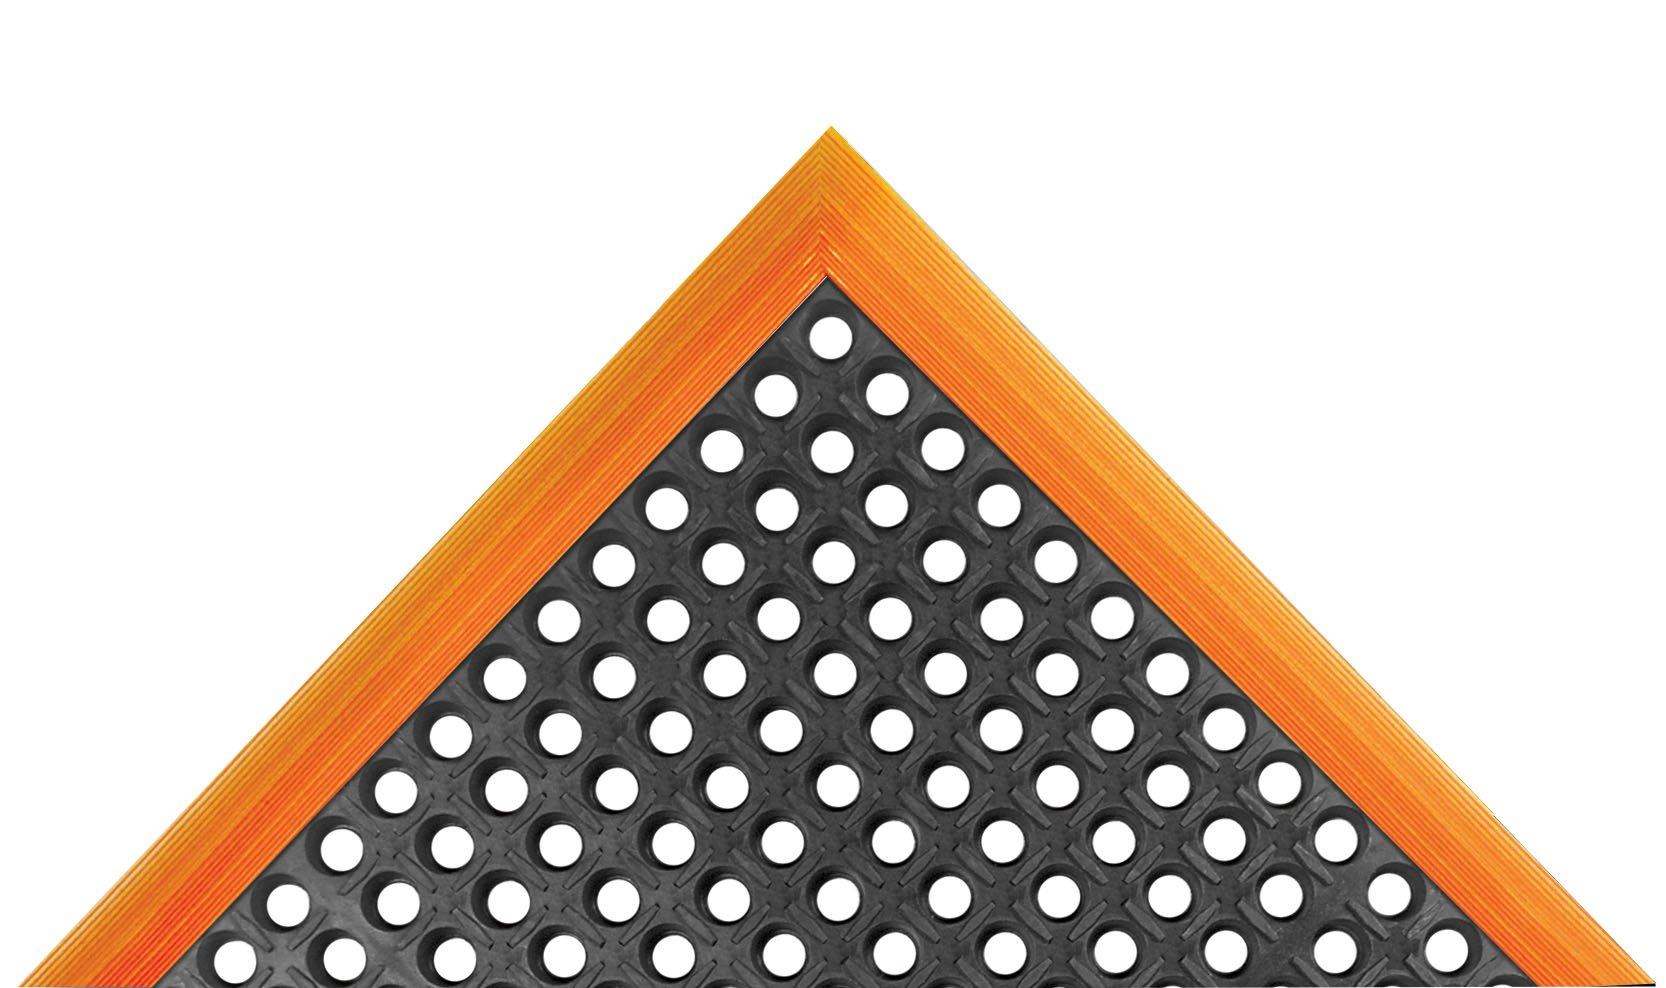 NoTrax Rubber 549 Safety Stance Anti-Fatigue Drainage Mat, for Wet Areas, 38'' Width x 40'' Length x 7/8'' Thickness, Black / Orange